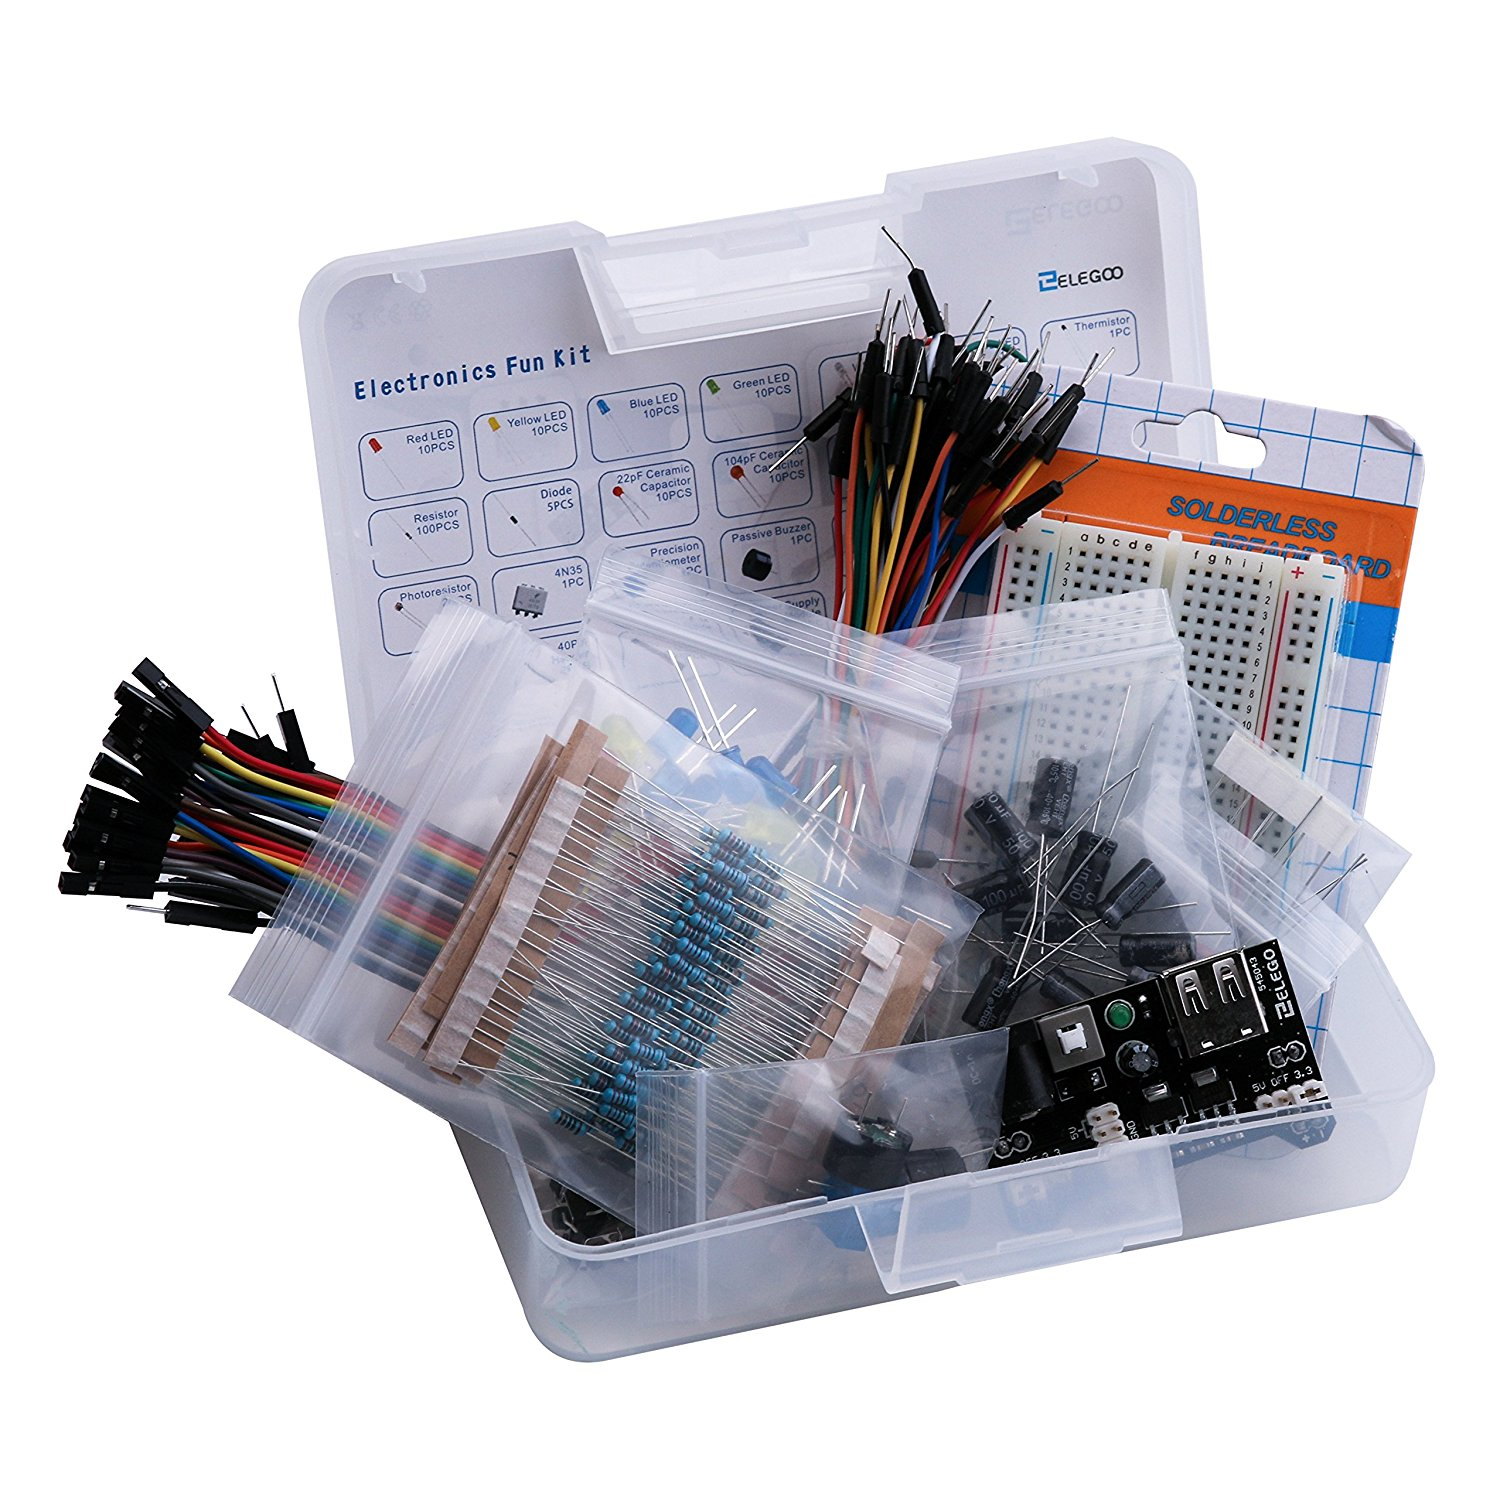 Electronic Fun Kit Bundle With Breadboard Cable Resistor Capacitor Digital Tachometer Using Arduino Plus Speed Control Led Potentiometer 235 Items For